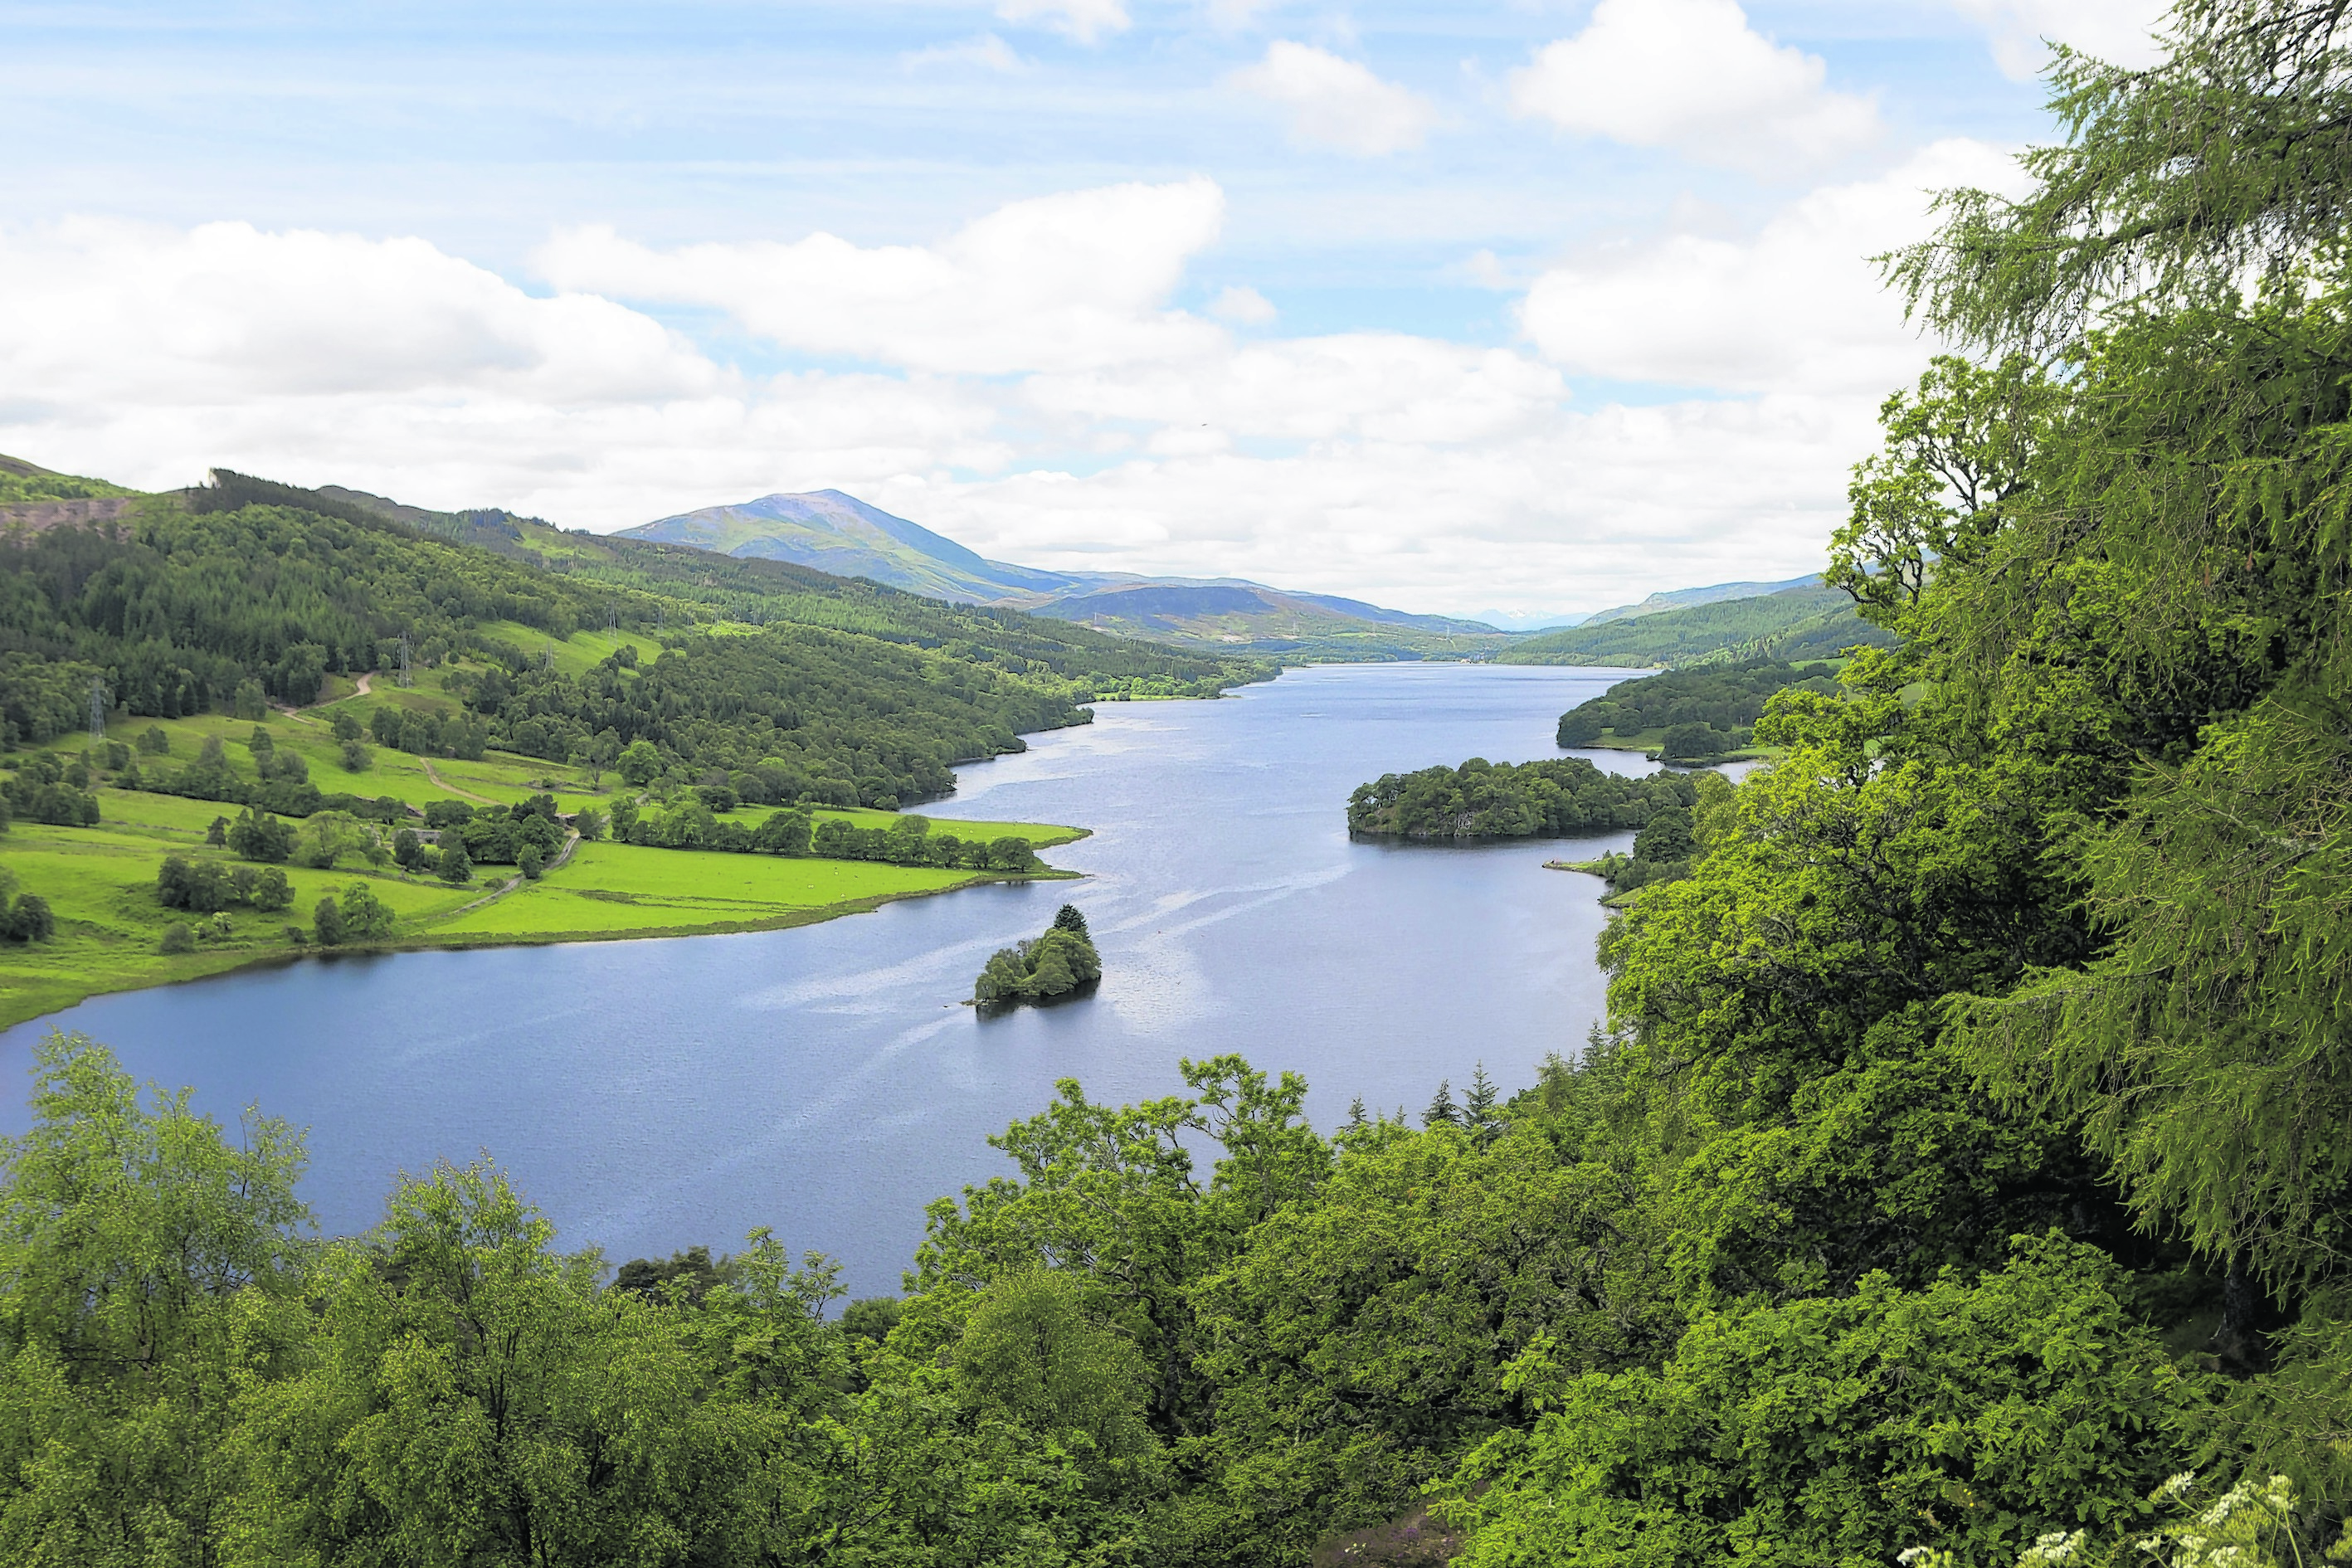 The site is located on the northern side of Farragon Ridge above Loch Tummel